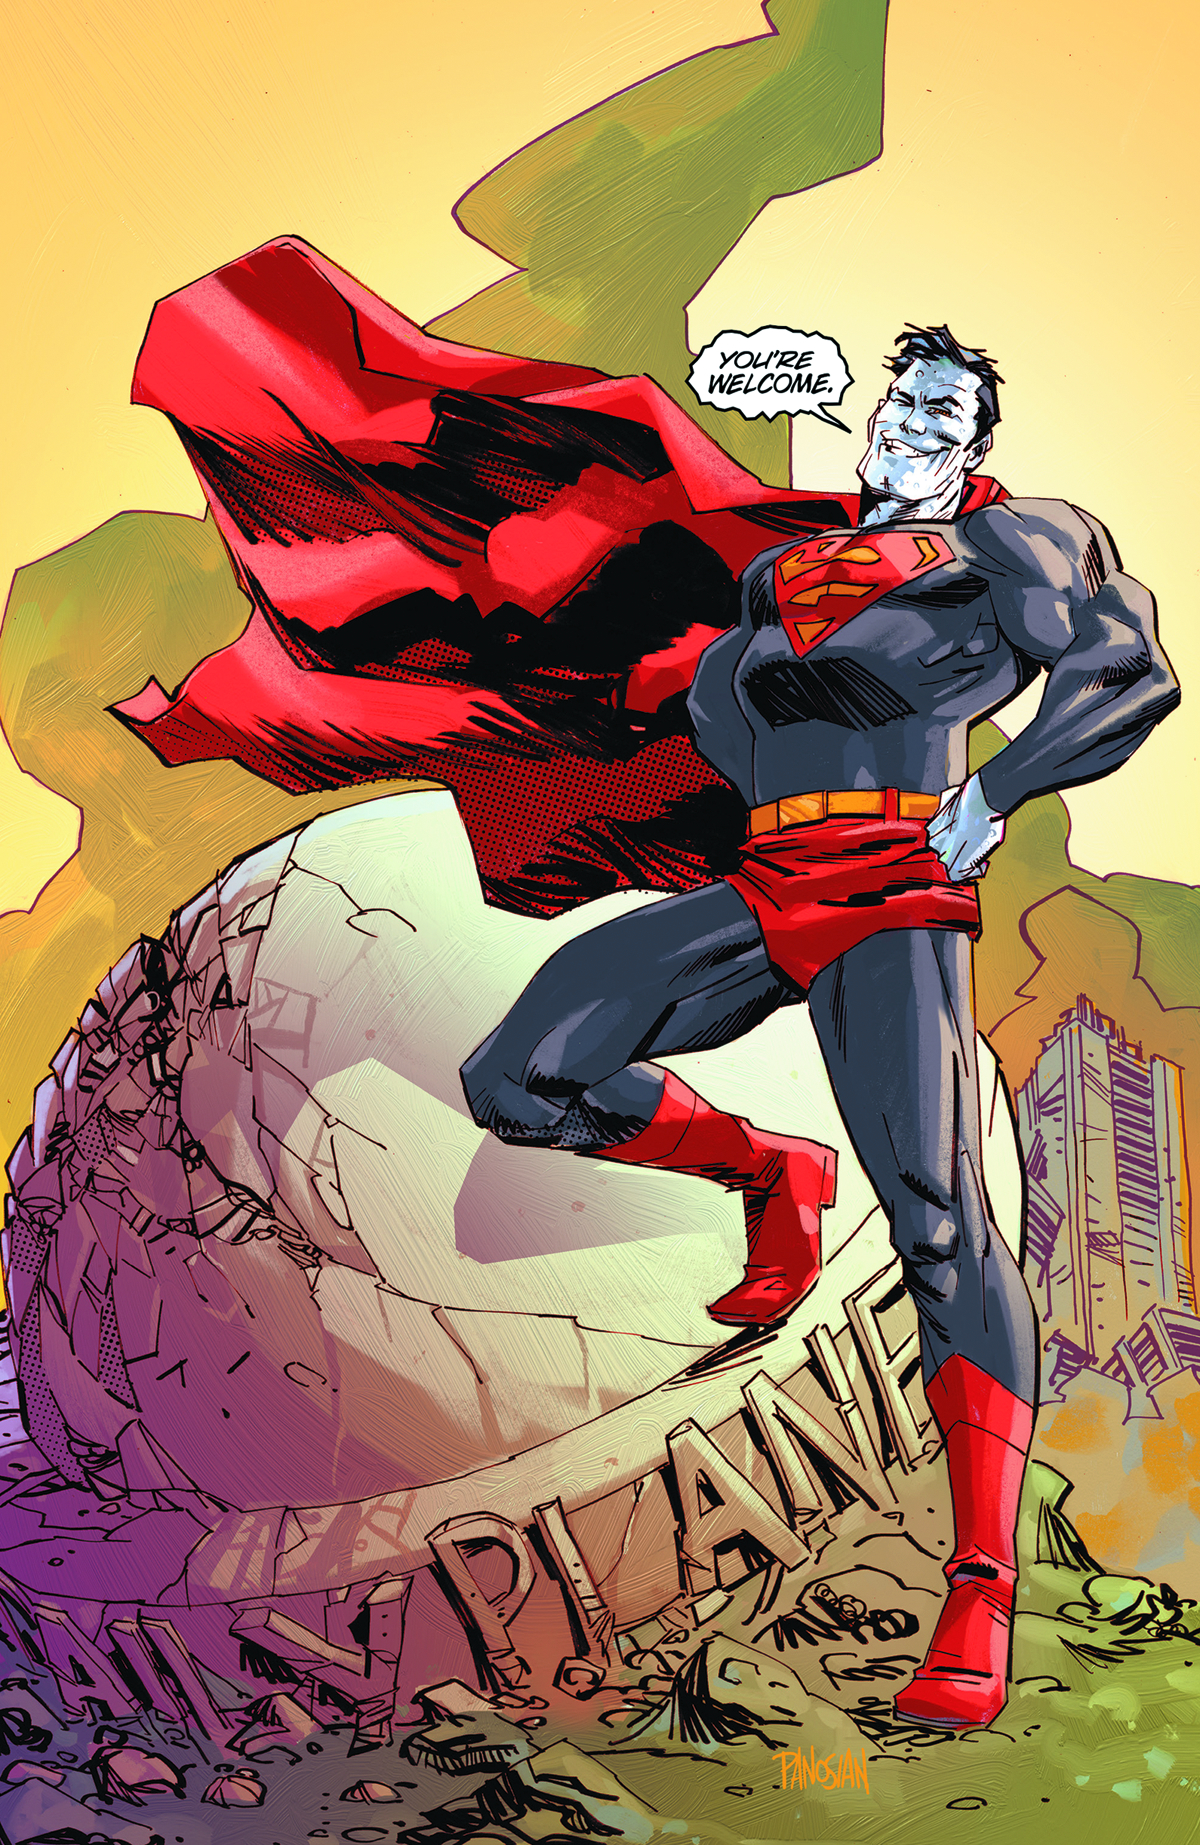 ADVENTURES OF SUPERMAN #9